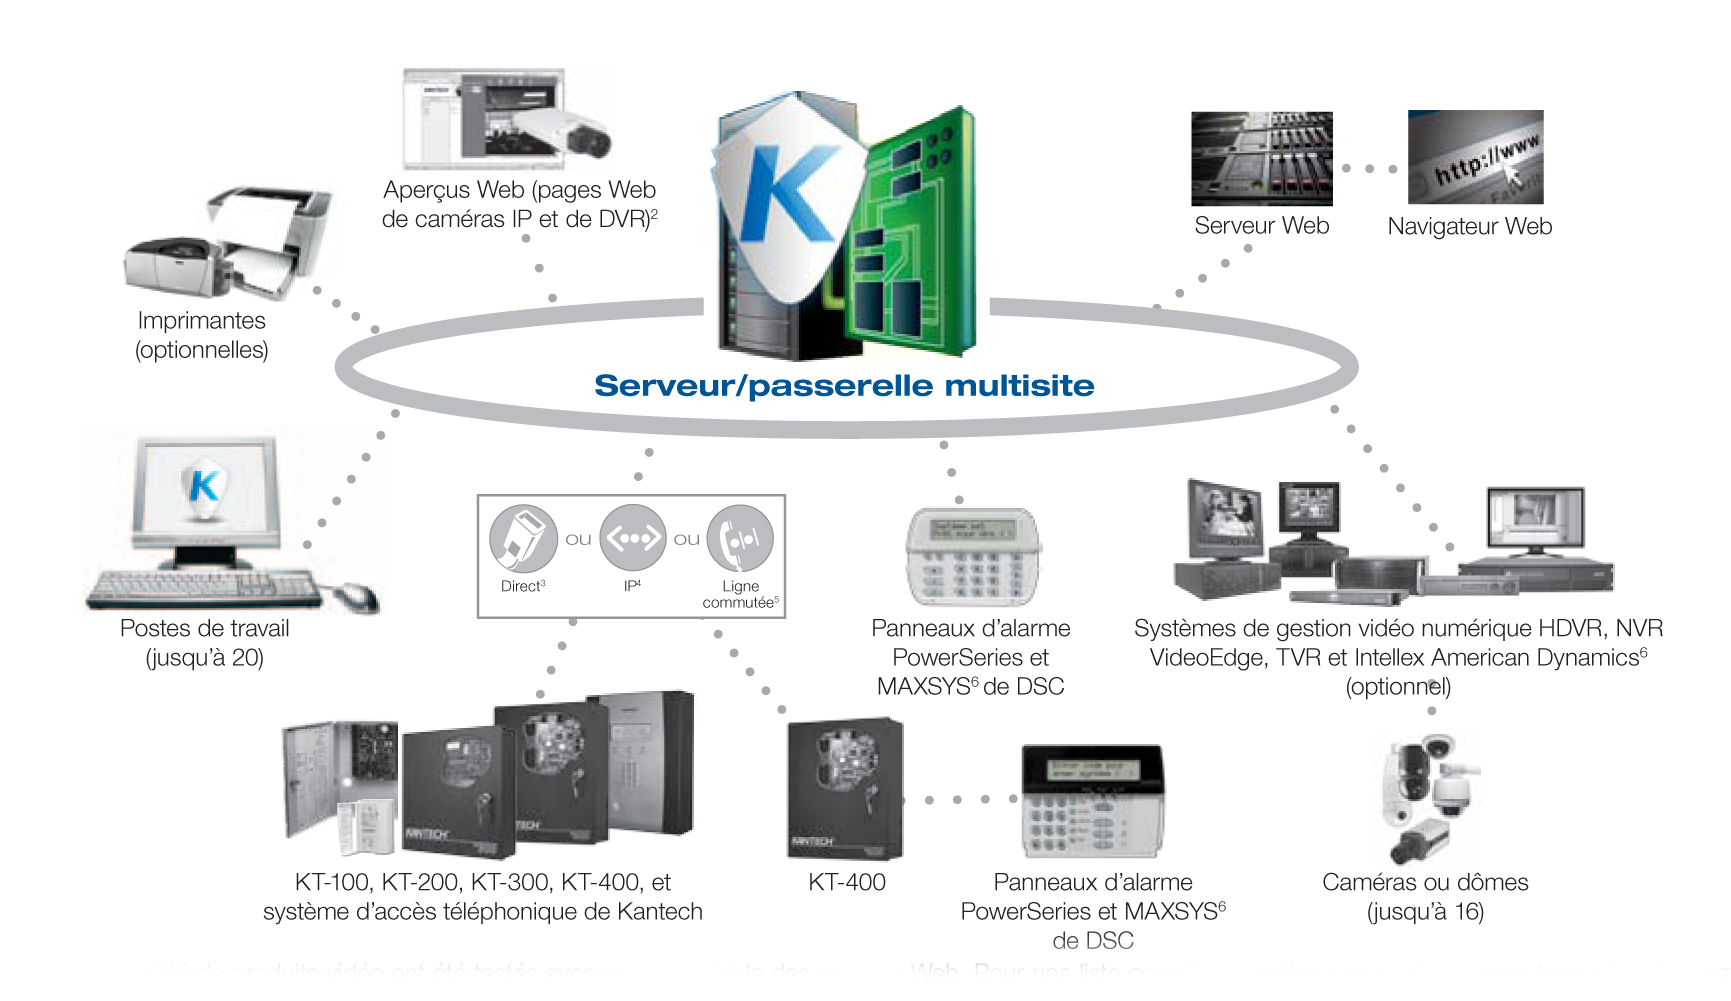 bedradings schema for access control systems